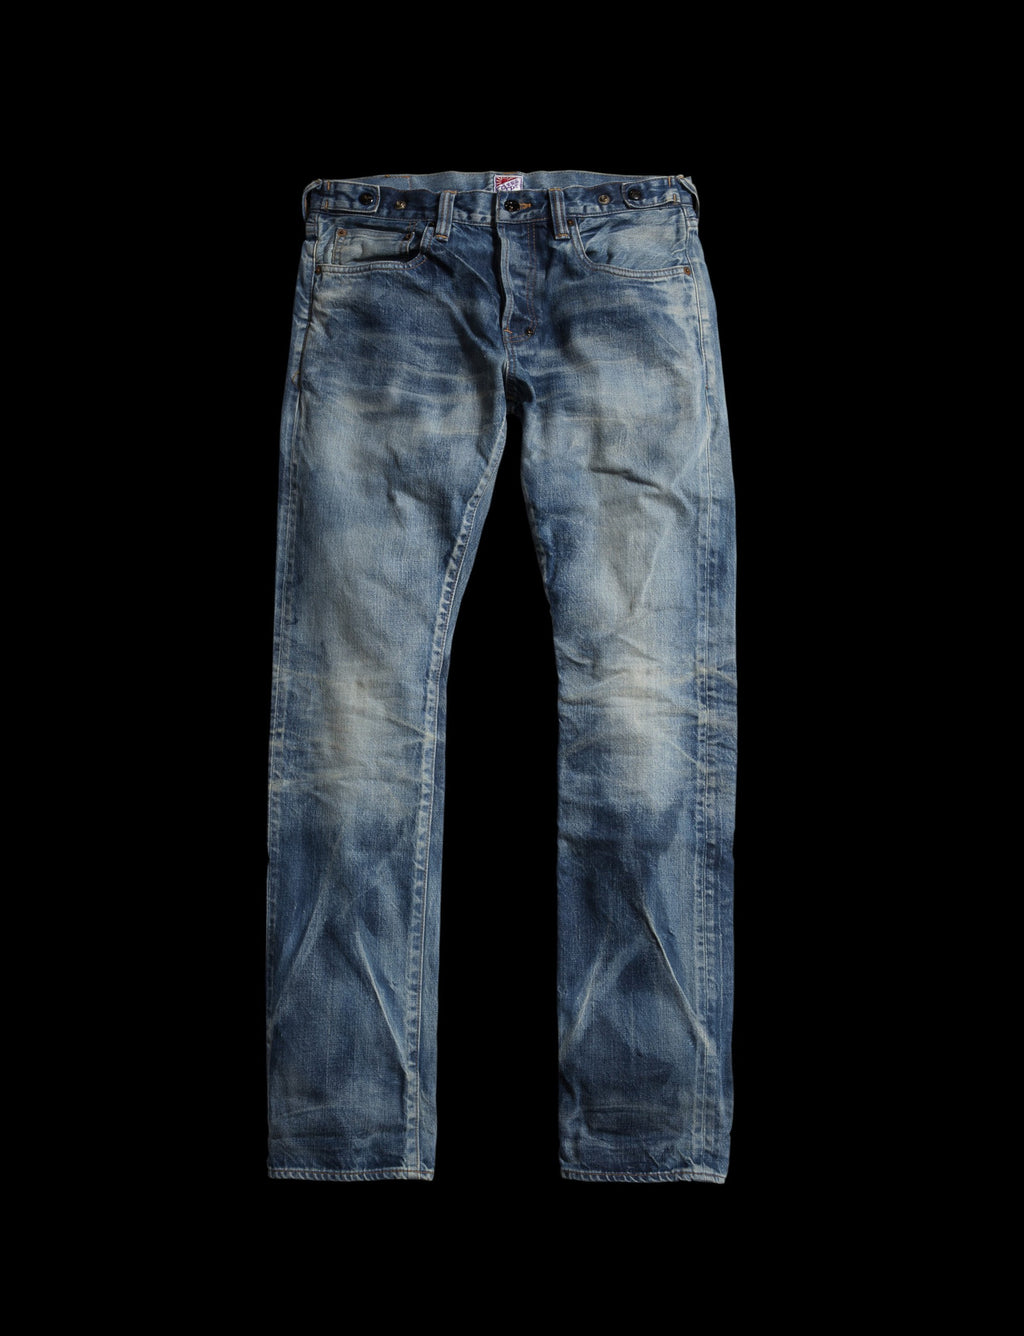 Prps - Barracuda - Computerize - Jeans - Prps